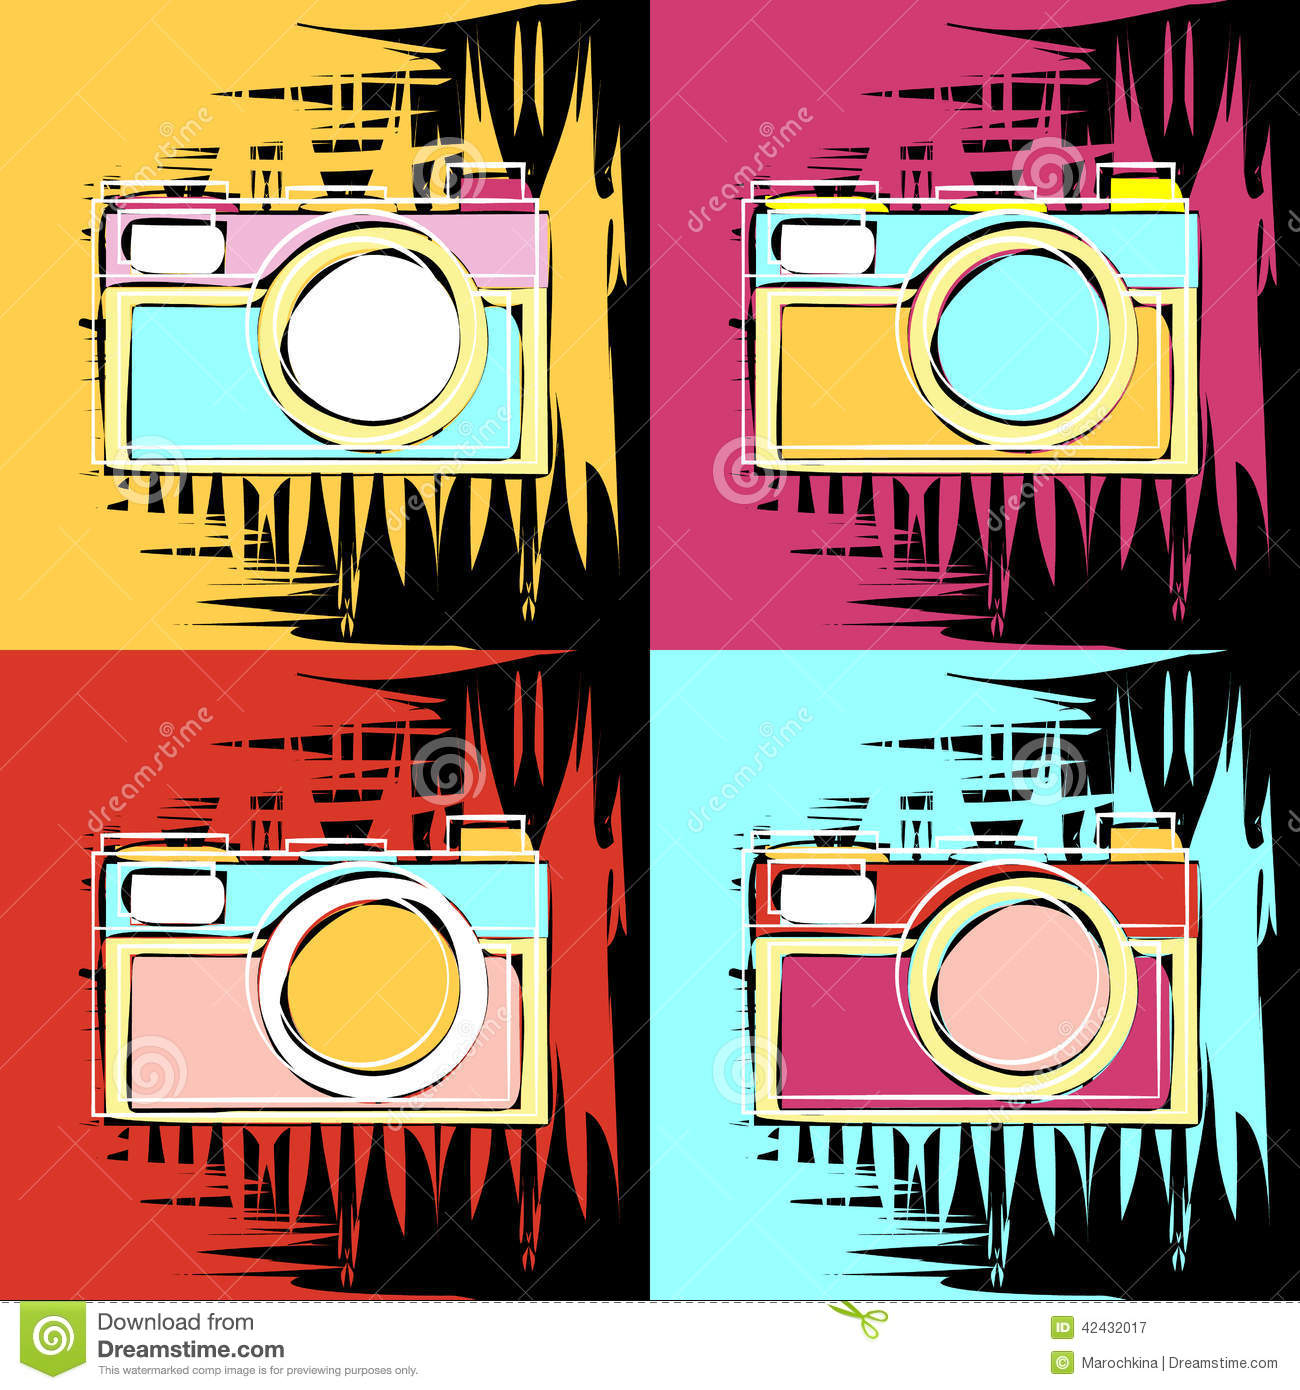 Painting In The Style Of Andy Warhol Stock Vector - Image ...